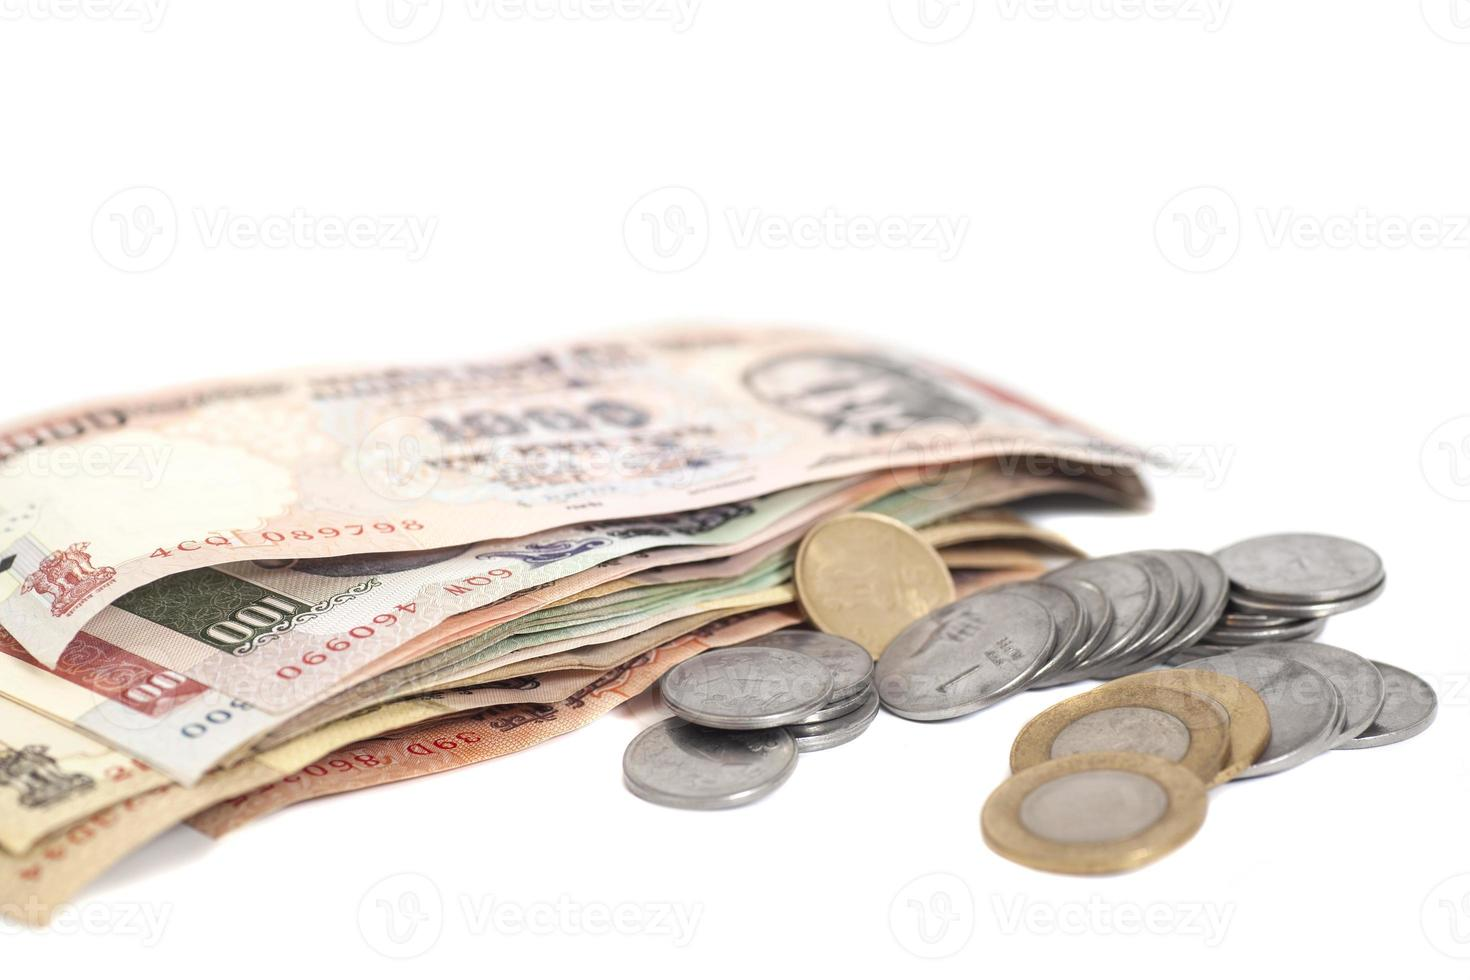 Indian Currency Rupee Notes and Coins photo